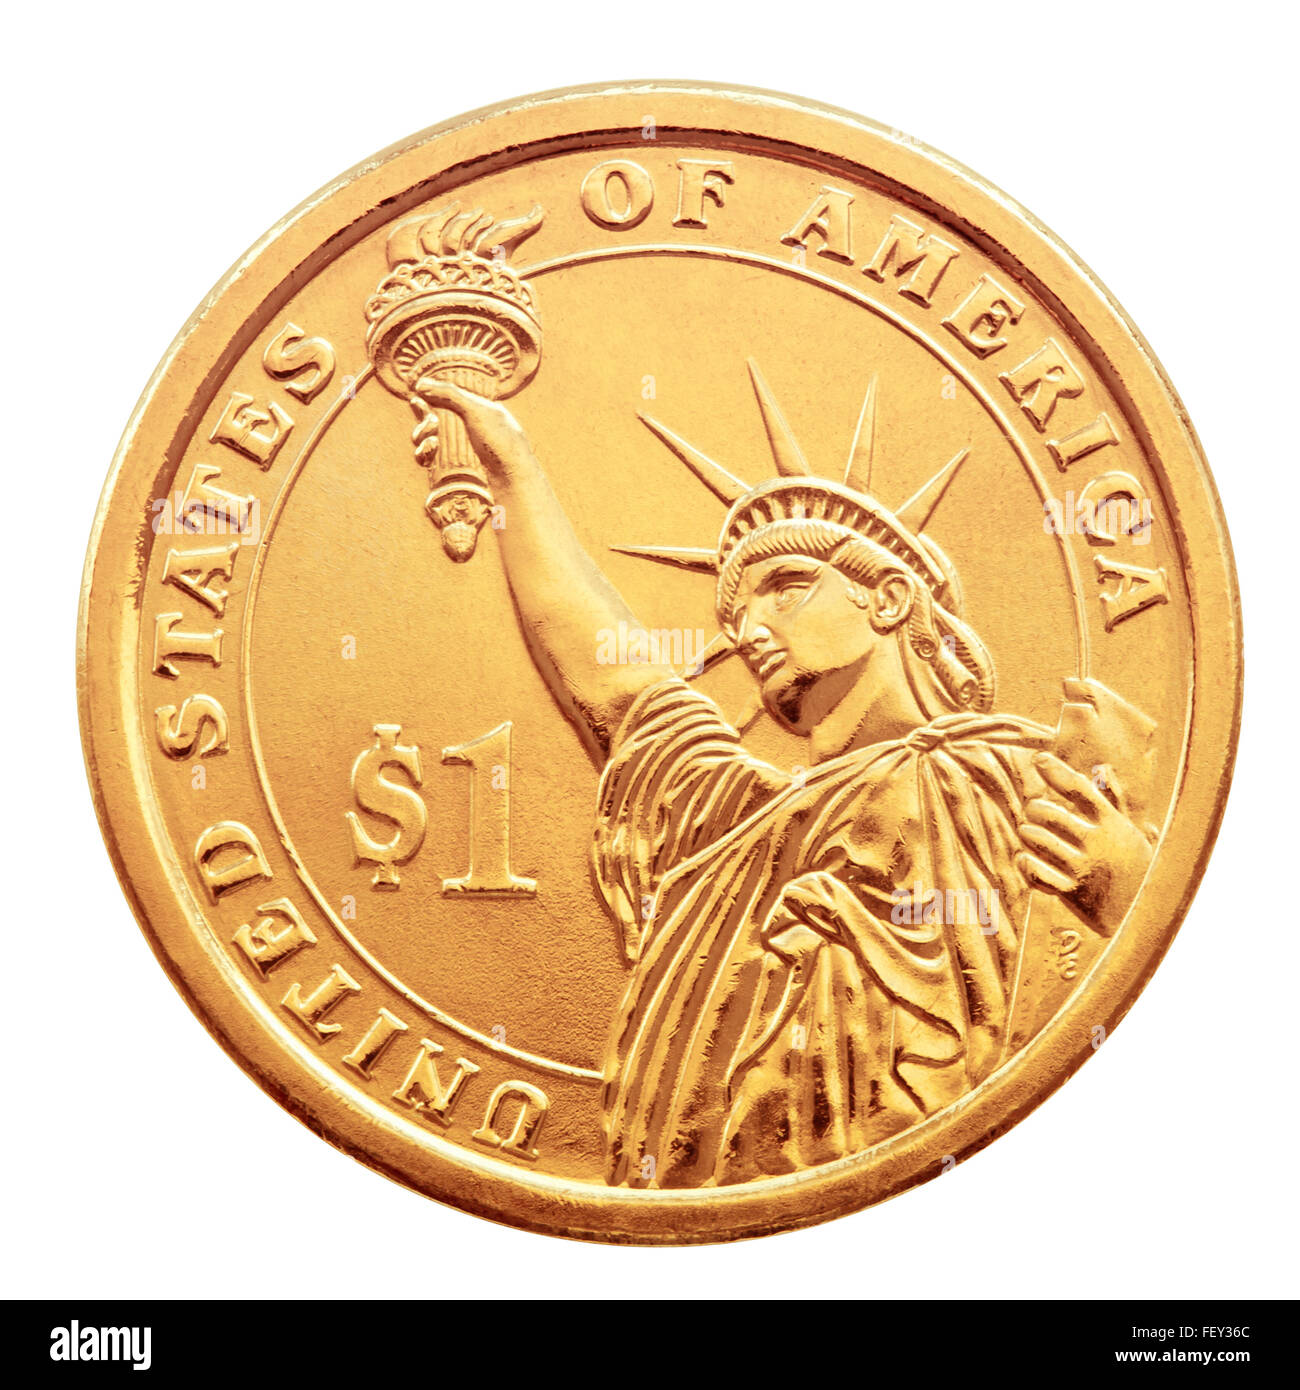 Golden one dollar coin, isolated on the white background. - Stock Image